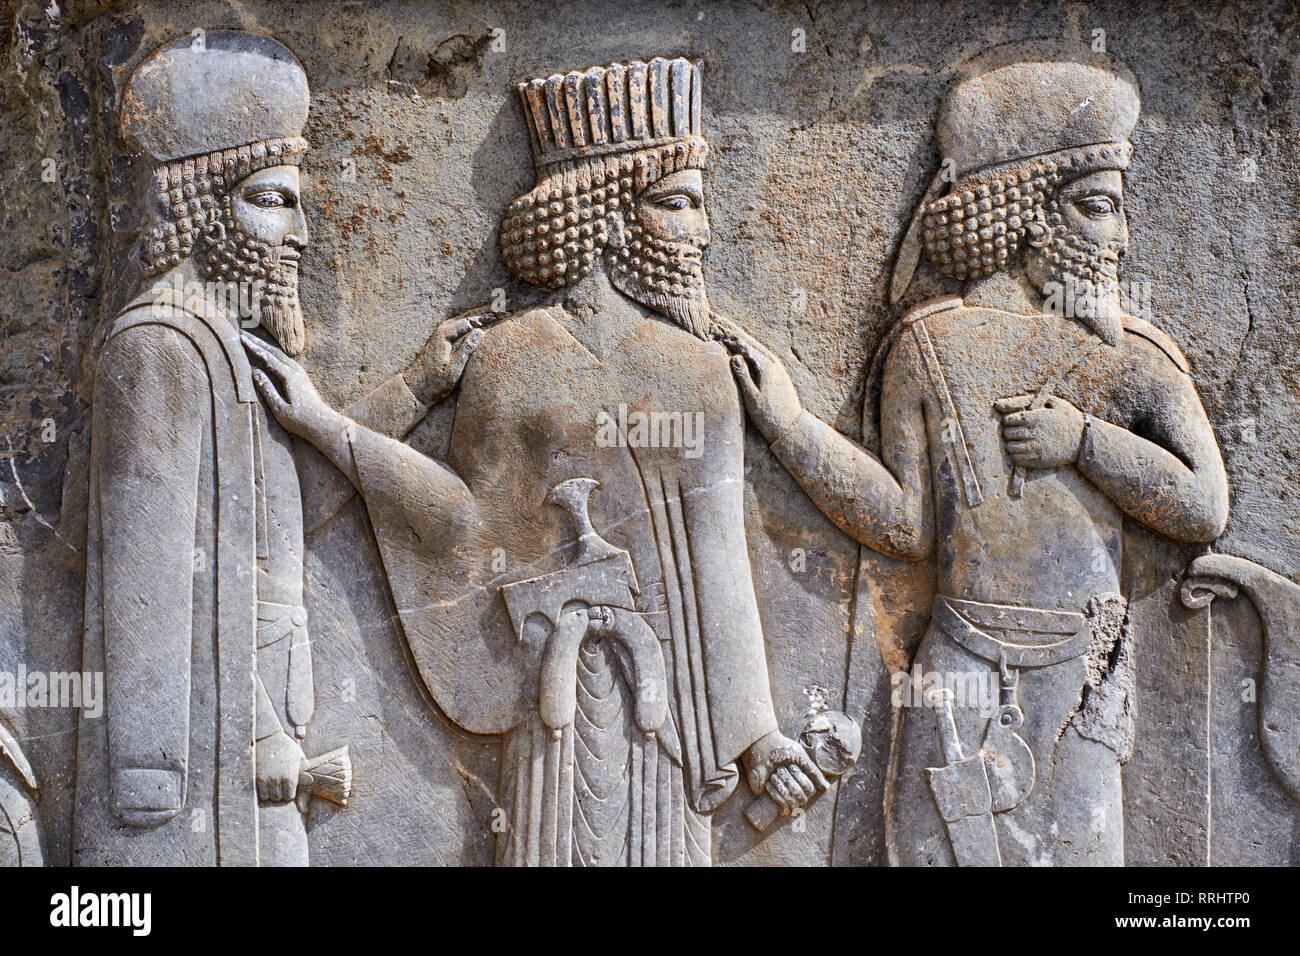 Relief of the warriors, staircases of Apadana, Persepolis, UNESCO World Heritage Site, Fars Province, Iran, Middle East - Stock Image